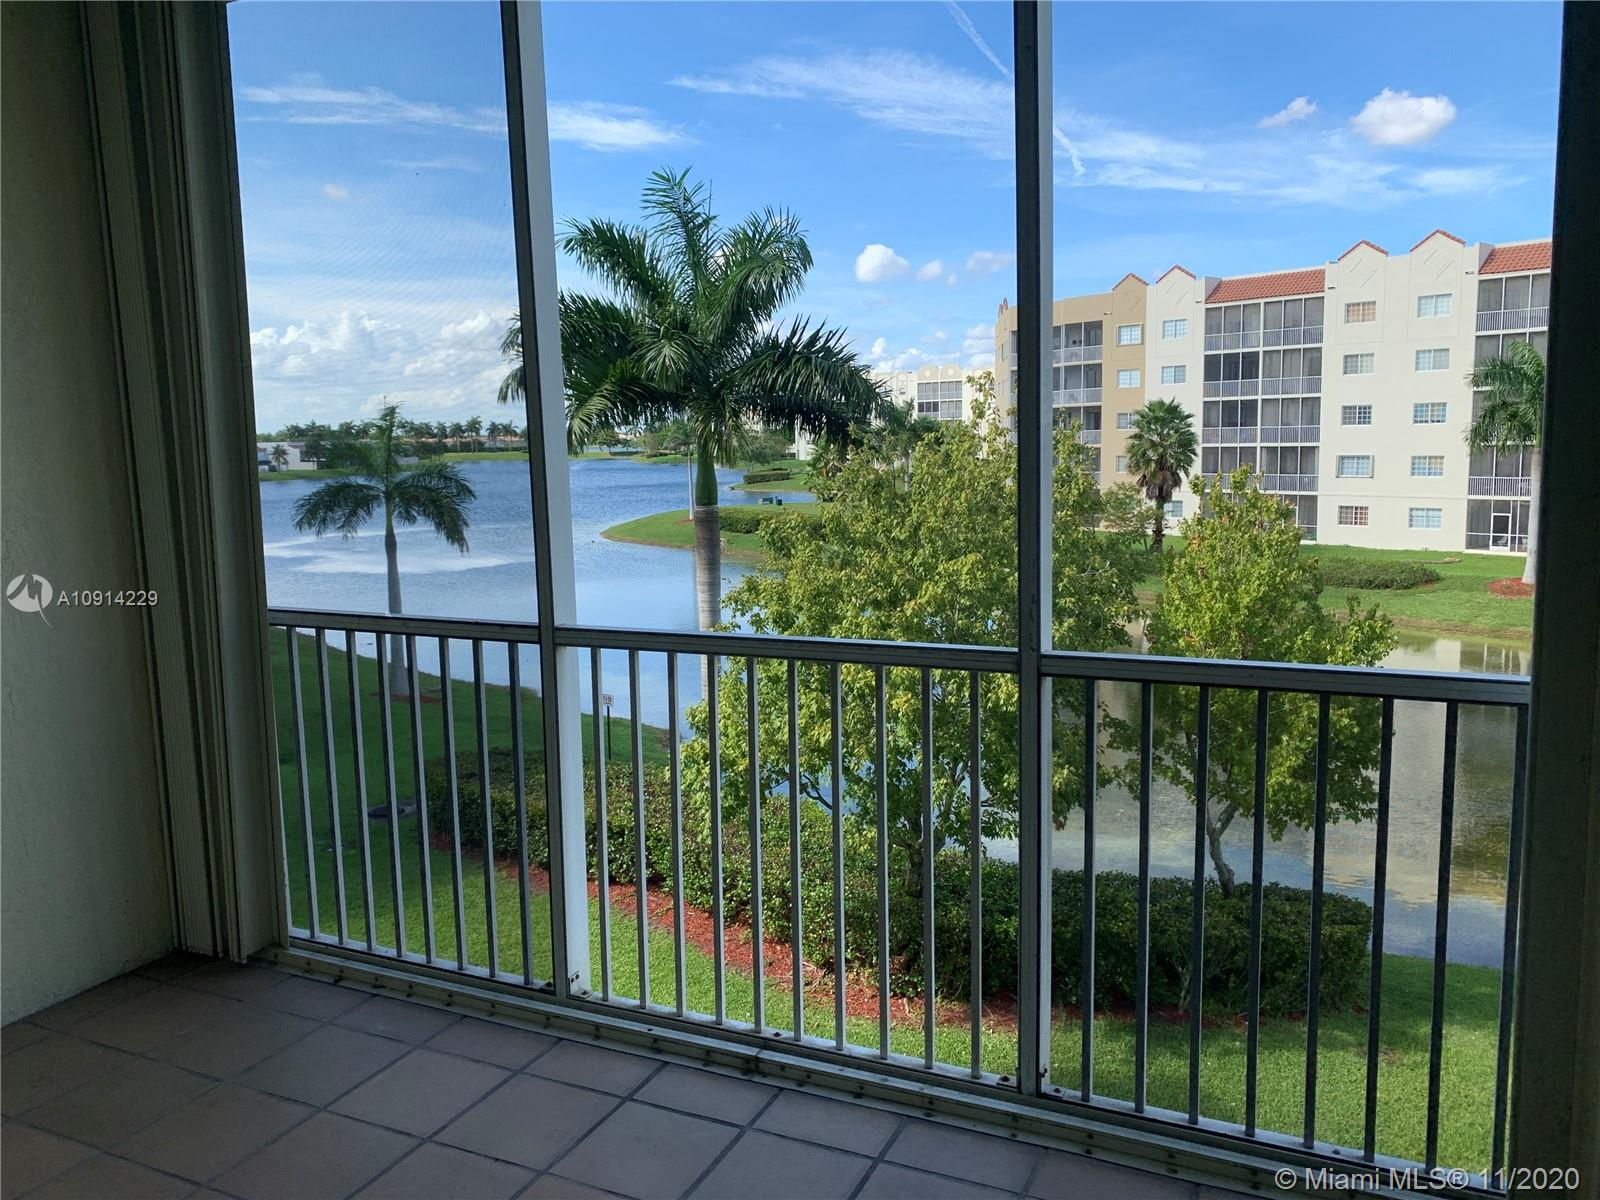 Captiva B #303 - 10710 NW 66th St #303, Doral, FL 33178